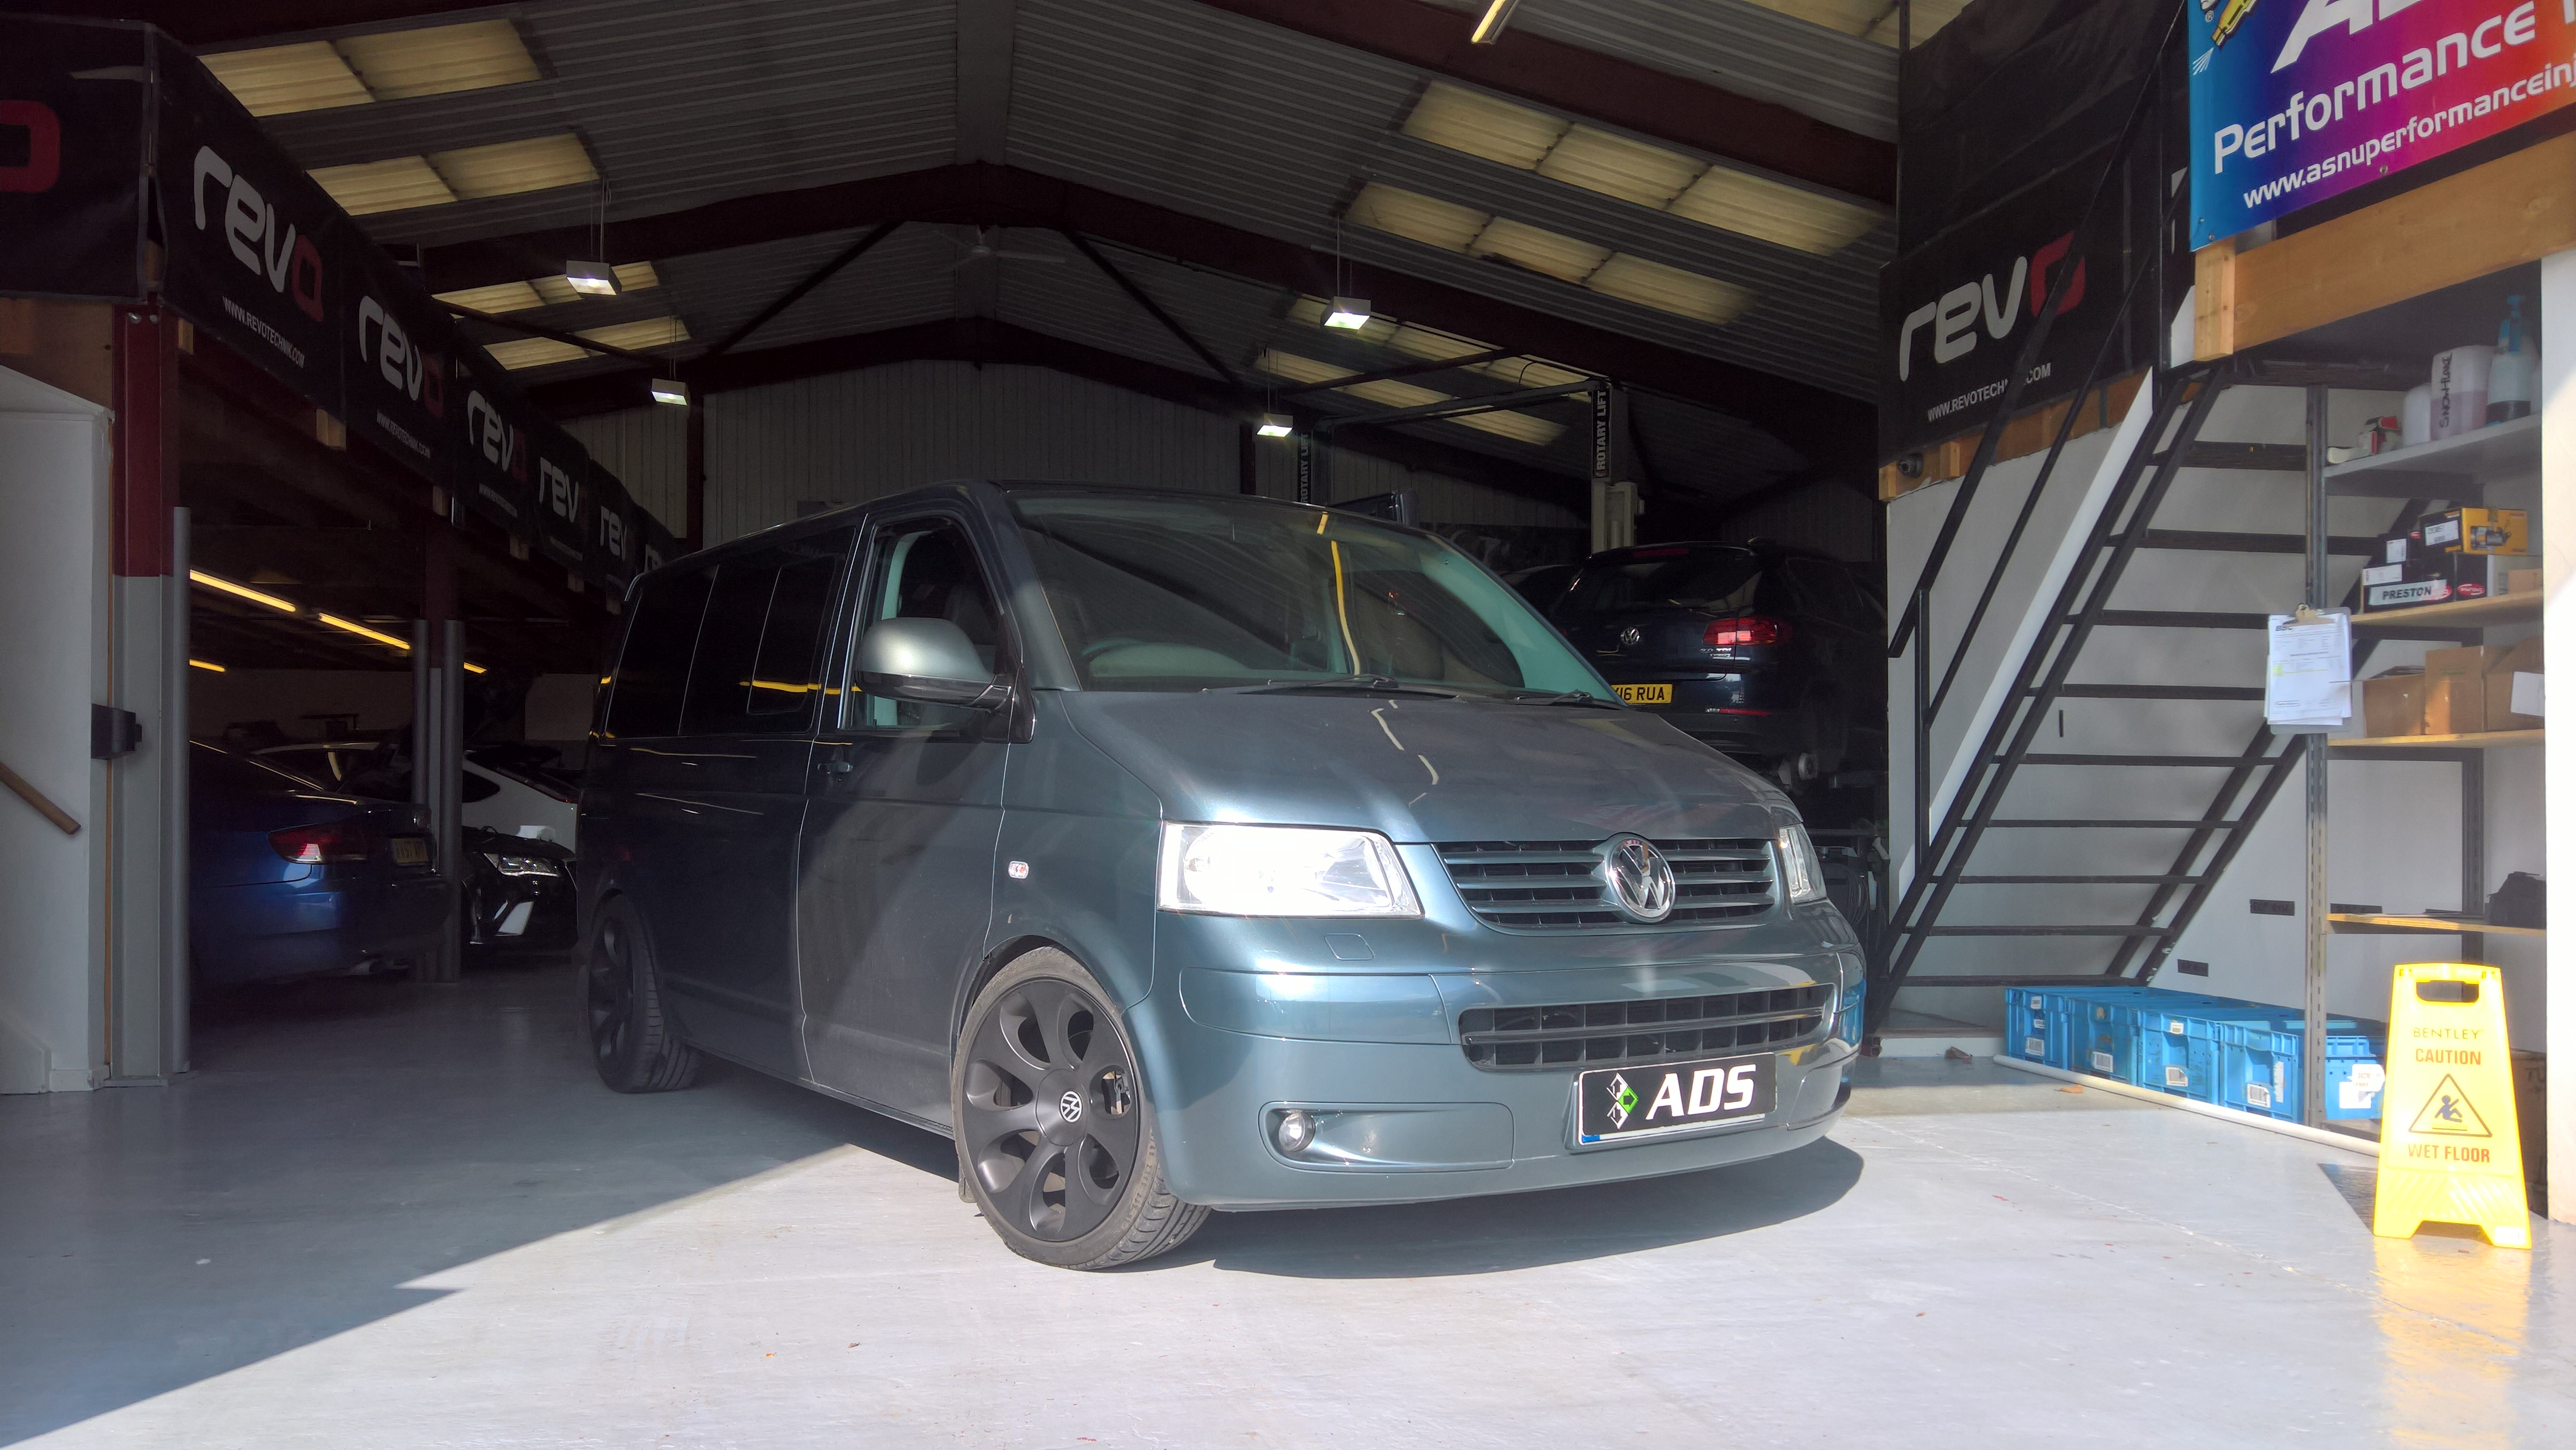 VW Transporter  130-174 conversion with Hybrid turbo and custom remap